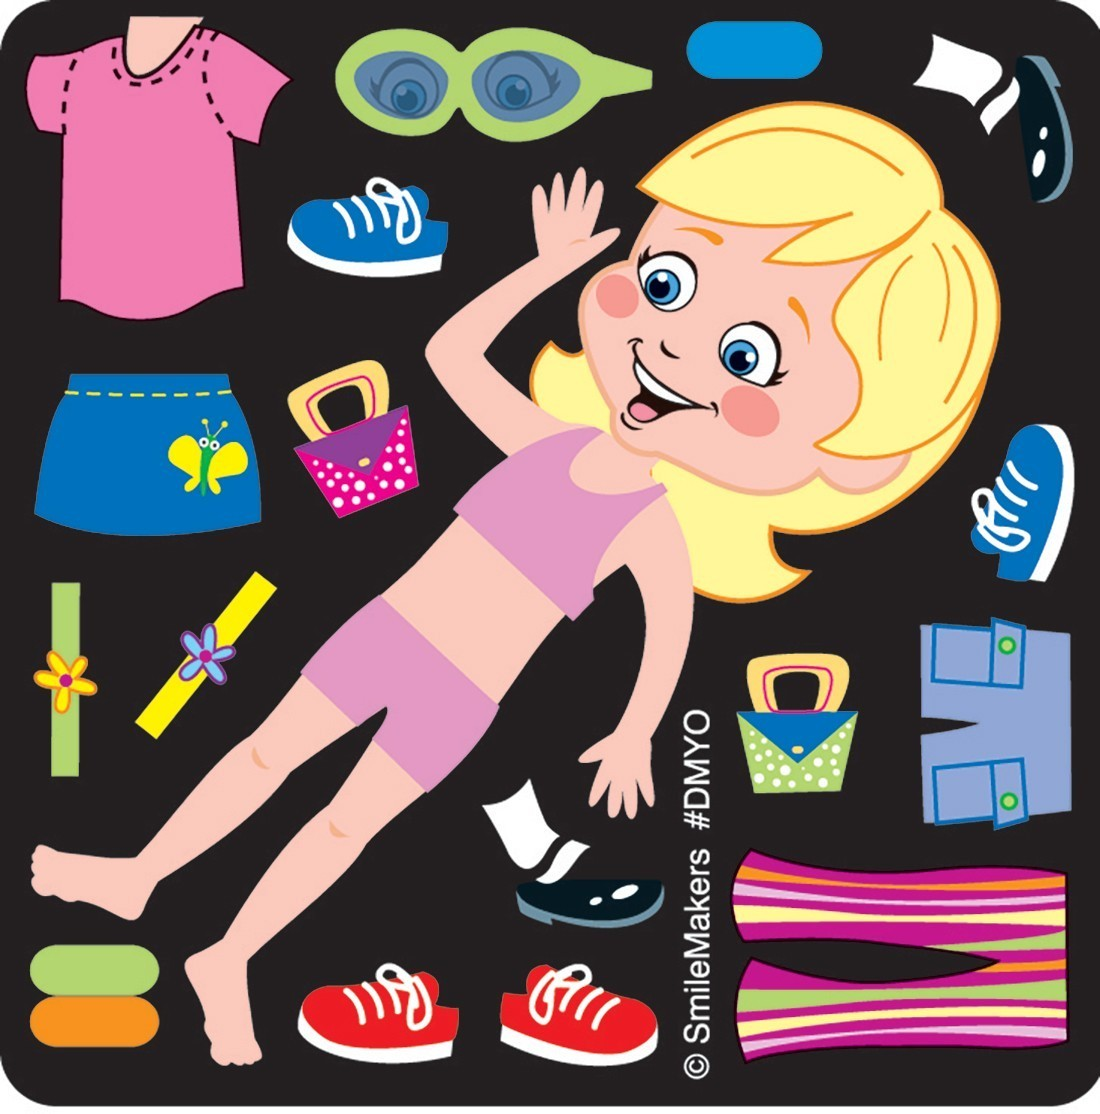 Make your own dress up girl stickers image slider image 0 slider image 1 slider image 2